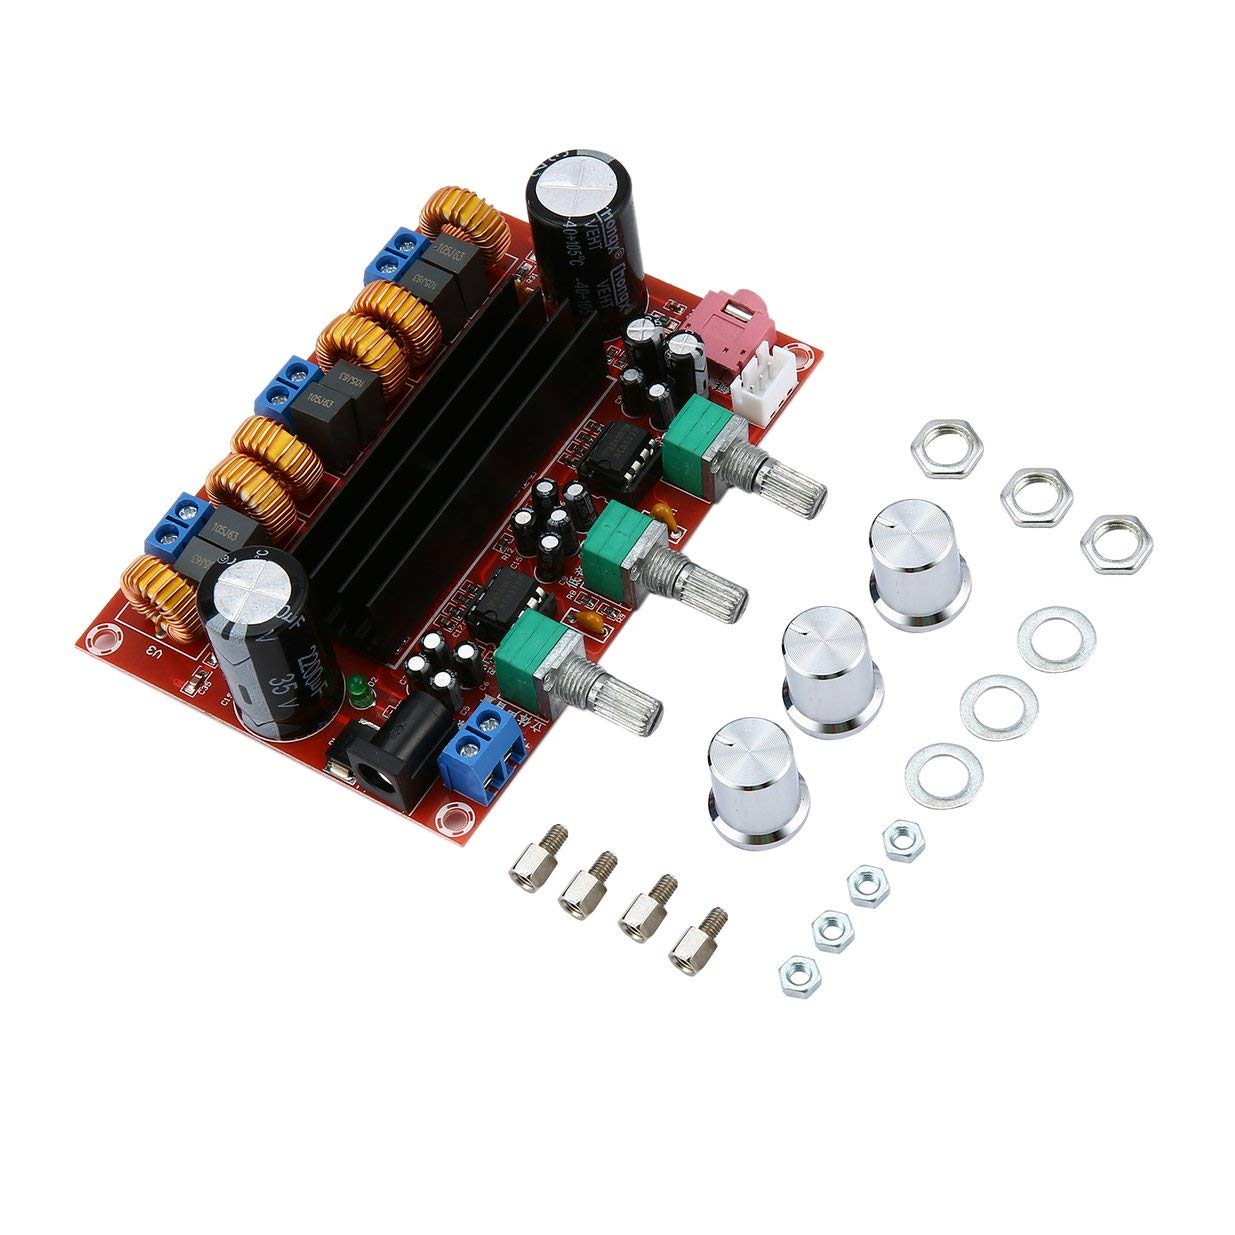 2.1 Amplifier Board, DROK 2.1 Channel 50Wx2+100W Stereo Audio Amplifier Module for Speakers, DC 10V-25V 12V 15V 19V 24V High Power TPA3116 DIY HiFi Digital Amp Kit with Volume Adjustment Knob Ensteinberge